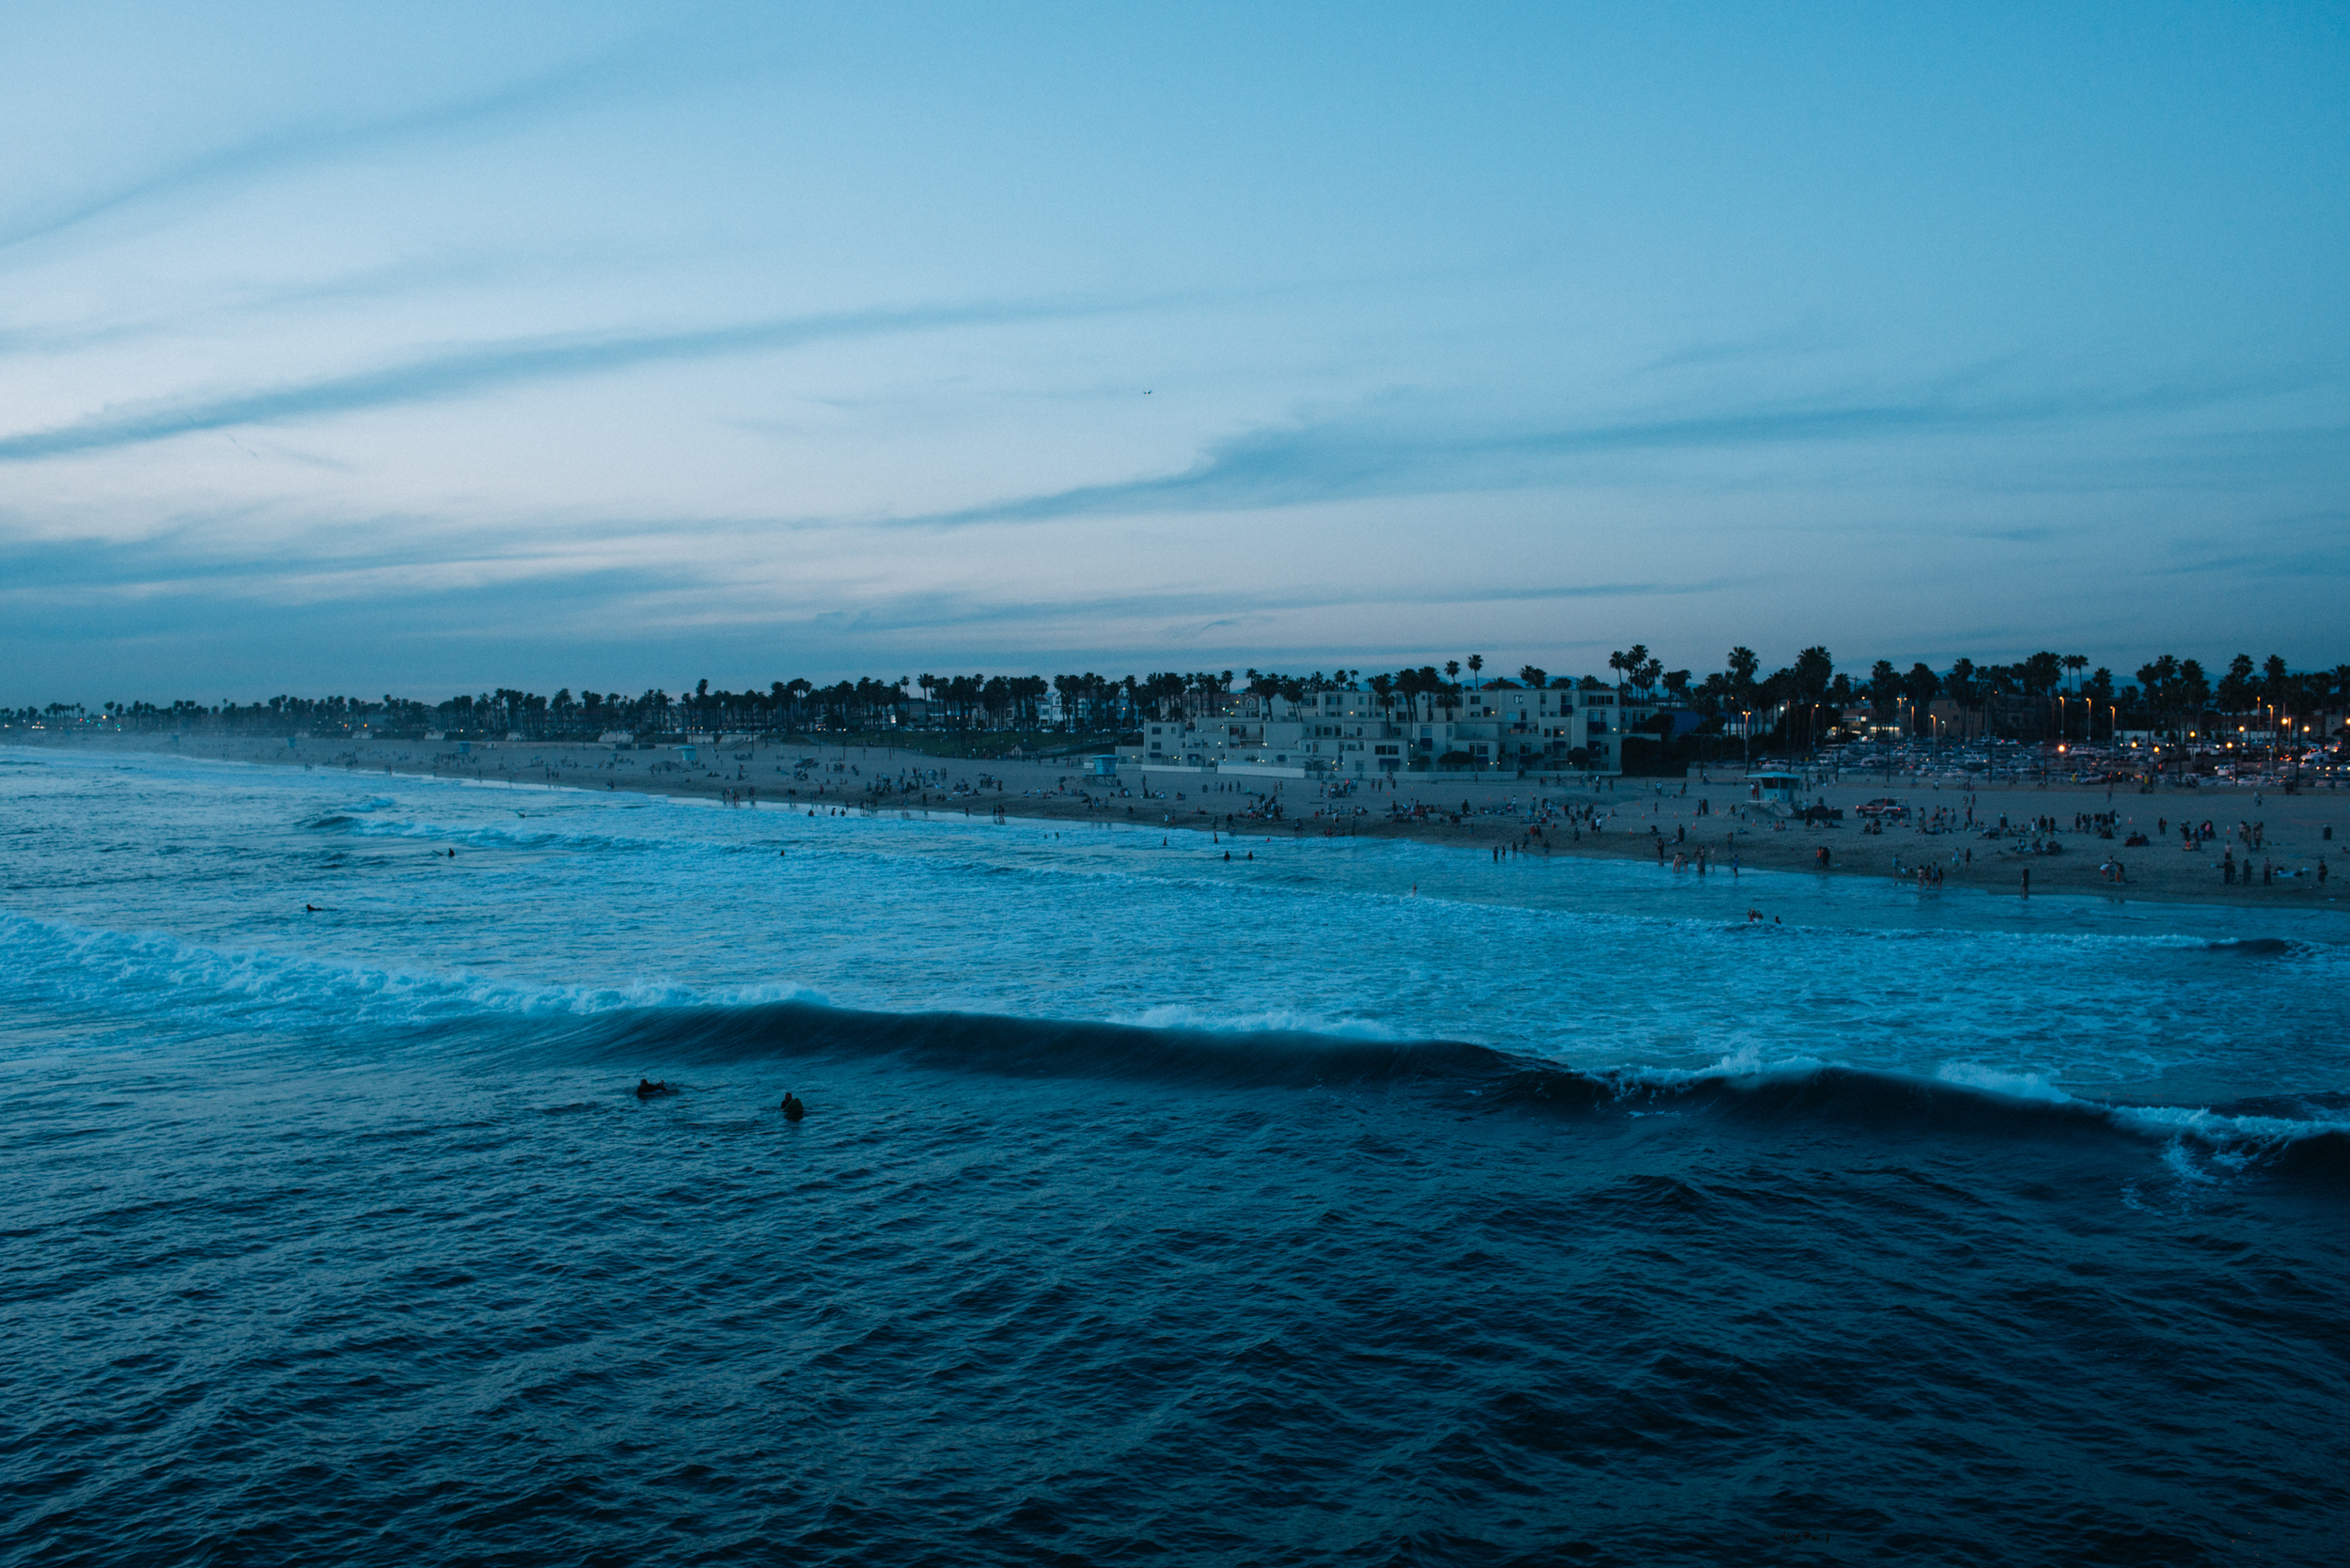 Huntington Beach at night.